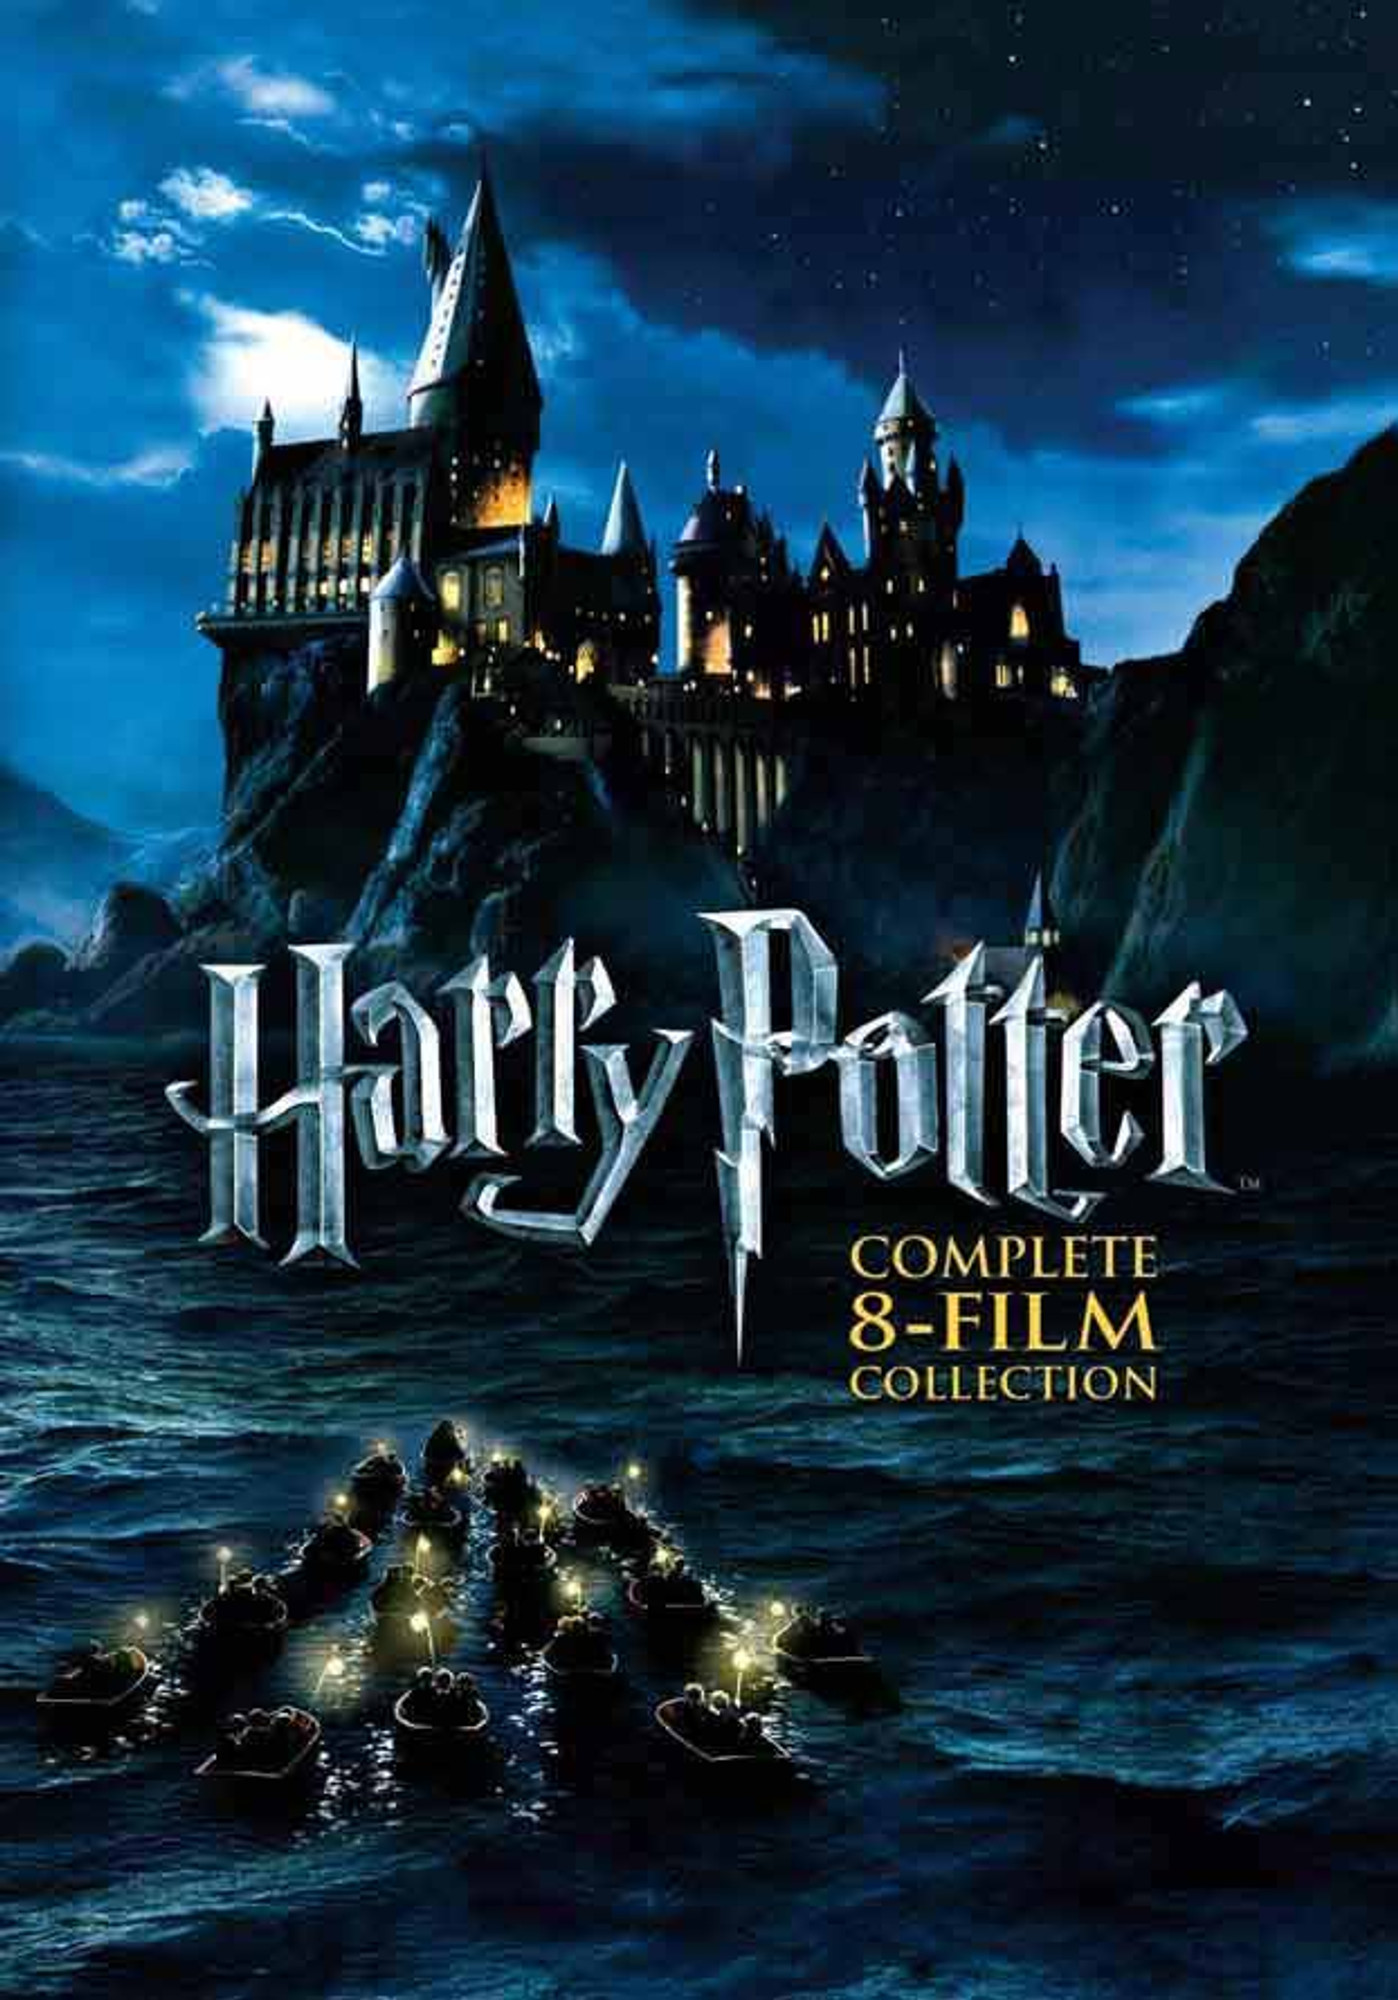 Harry Potter 8 Film Collection [Movies Anywhere HD, Vudu HD or iTunes HD  via Movies Anywhere] Read Details